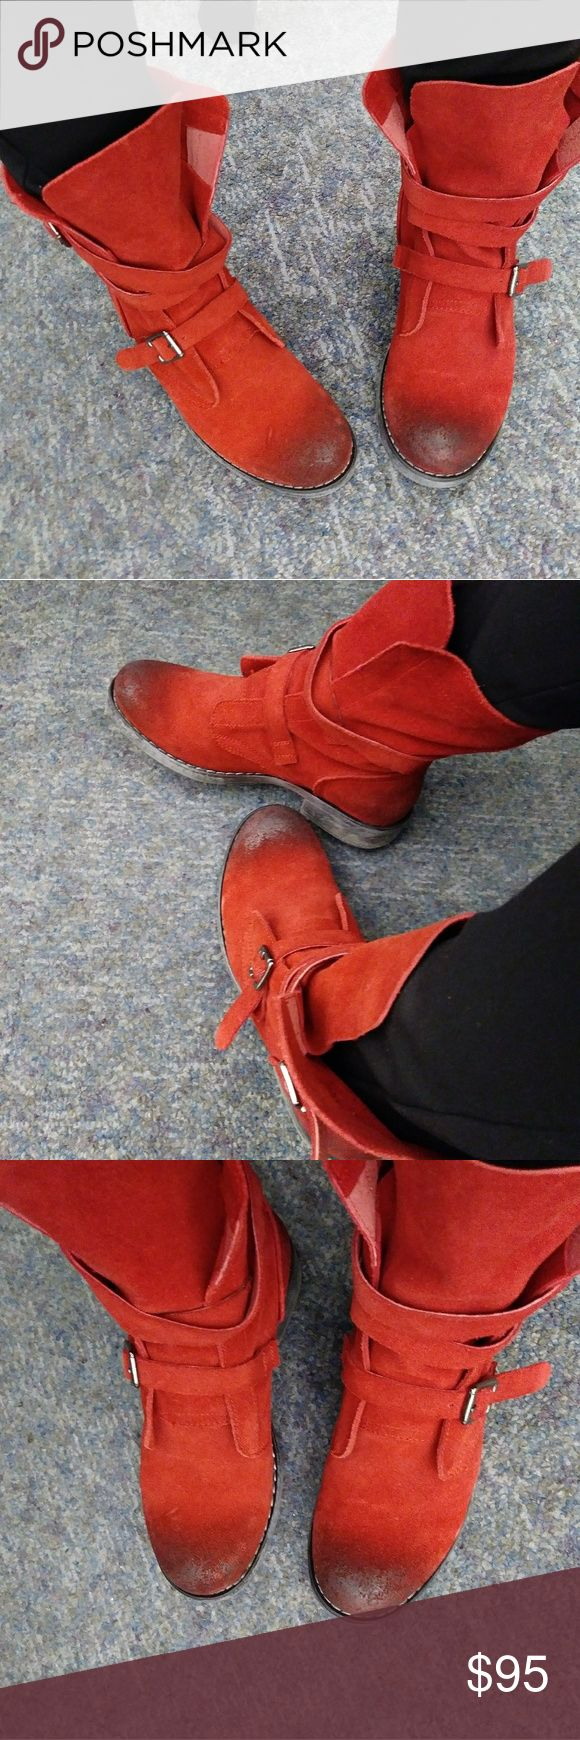 Red Suede Leather Moto Combat Boot 6 Super trendy and high quality suede with buckles. Slouchy look with oiled look distressed toe. Super cute! Very comfy! Diba Shoes Combat & Moto Boots